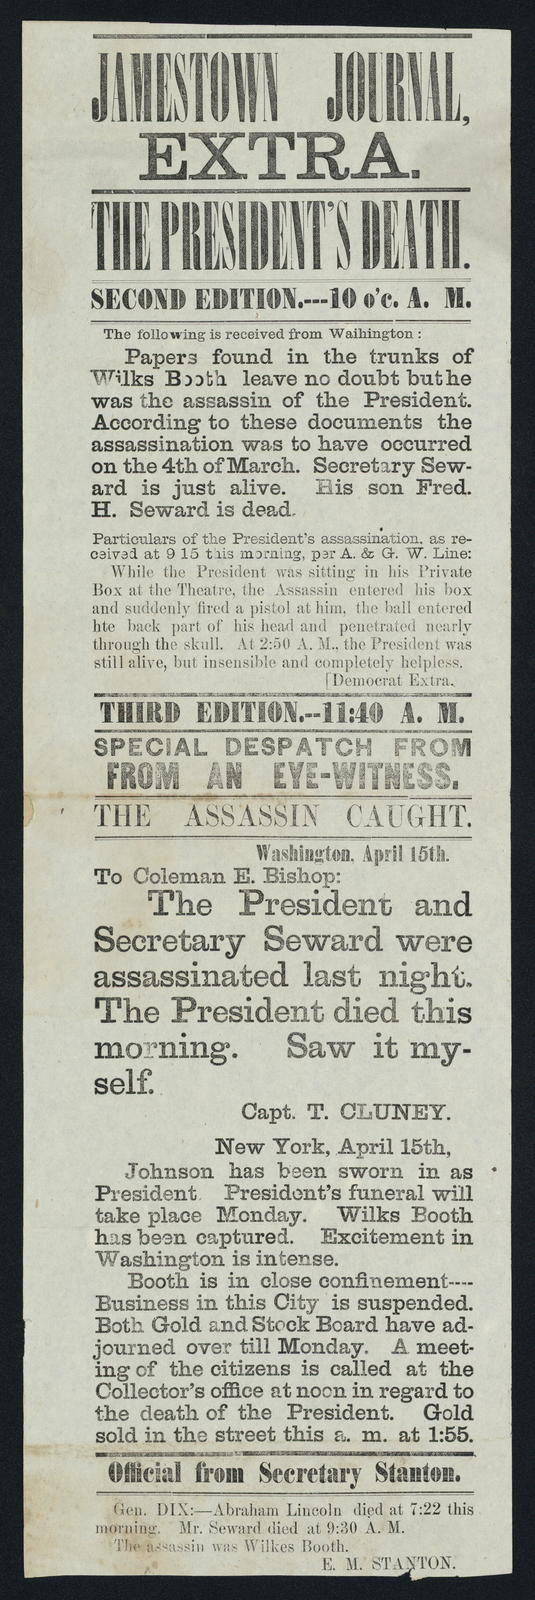 Jamestown Journal Extra. The President's death. Second edition. 10 o'clock A. M. Third Edition. 11:40 A. M.